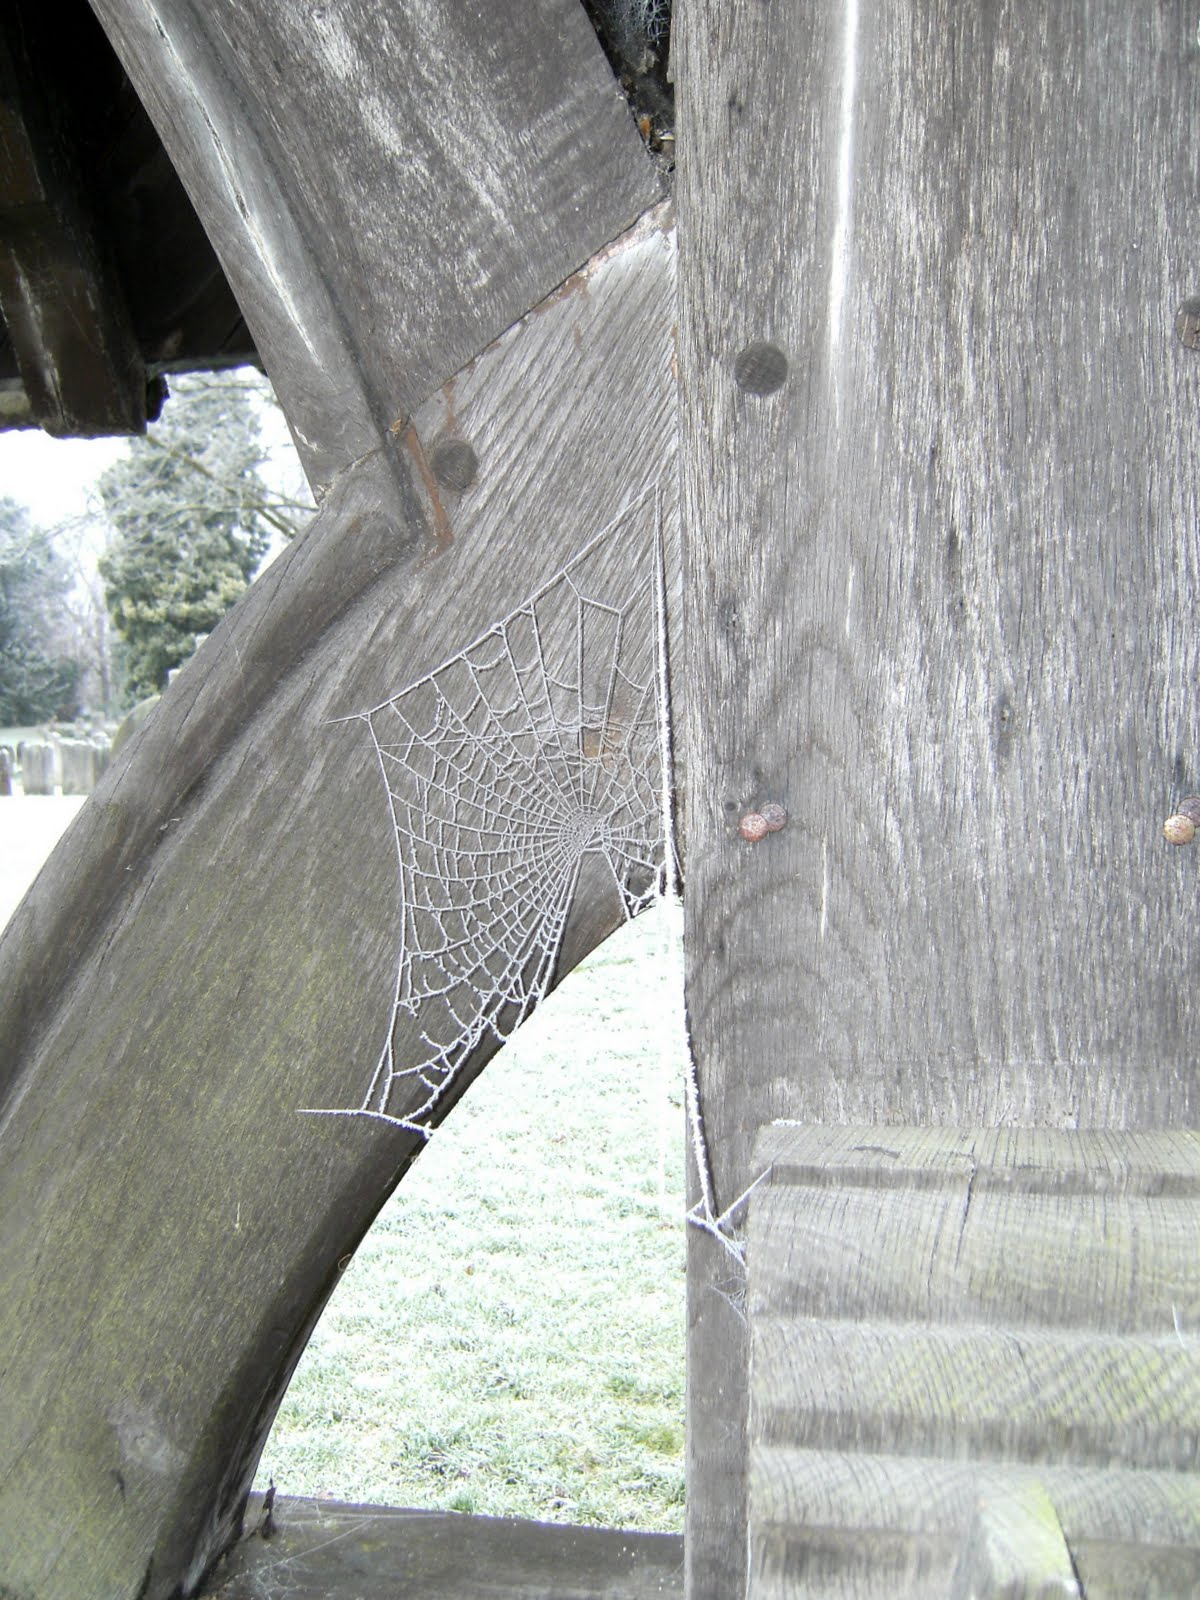 DSCF0016 Frosty spider's web, Betchworth